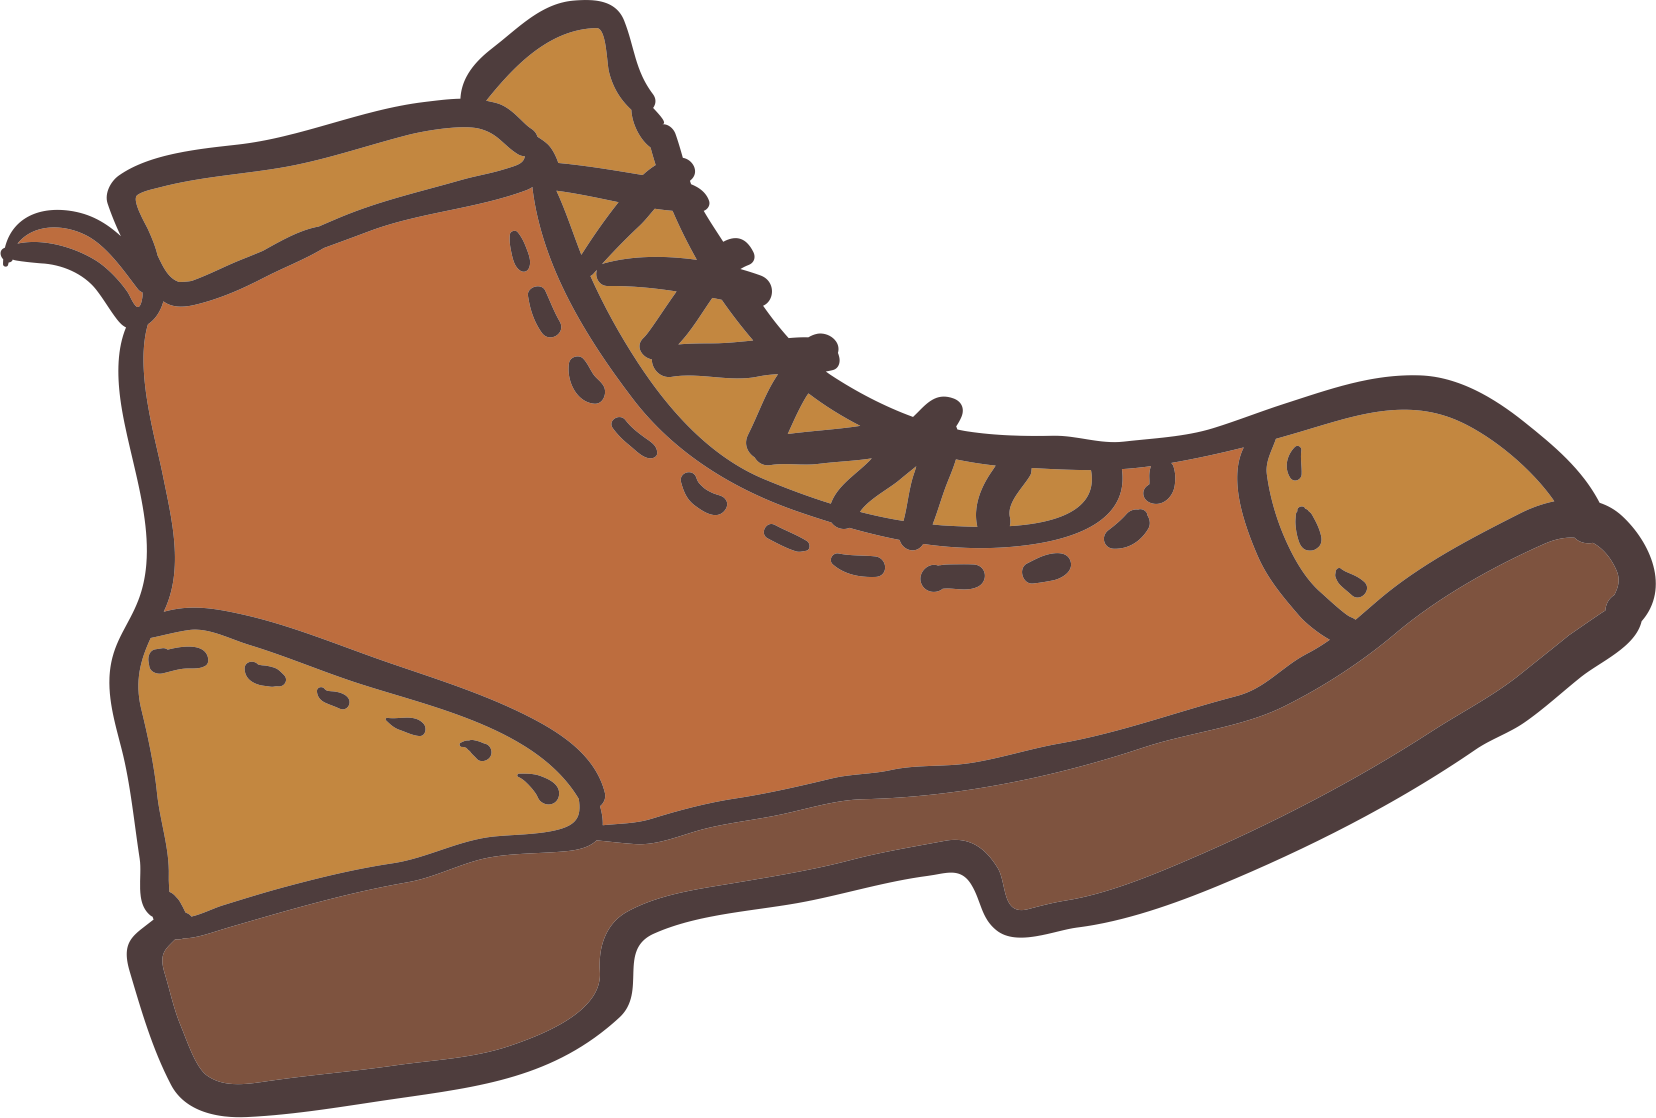 Hike clipart brown boot. Clip art outdoor boots